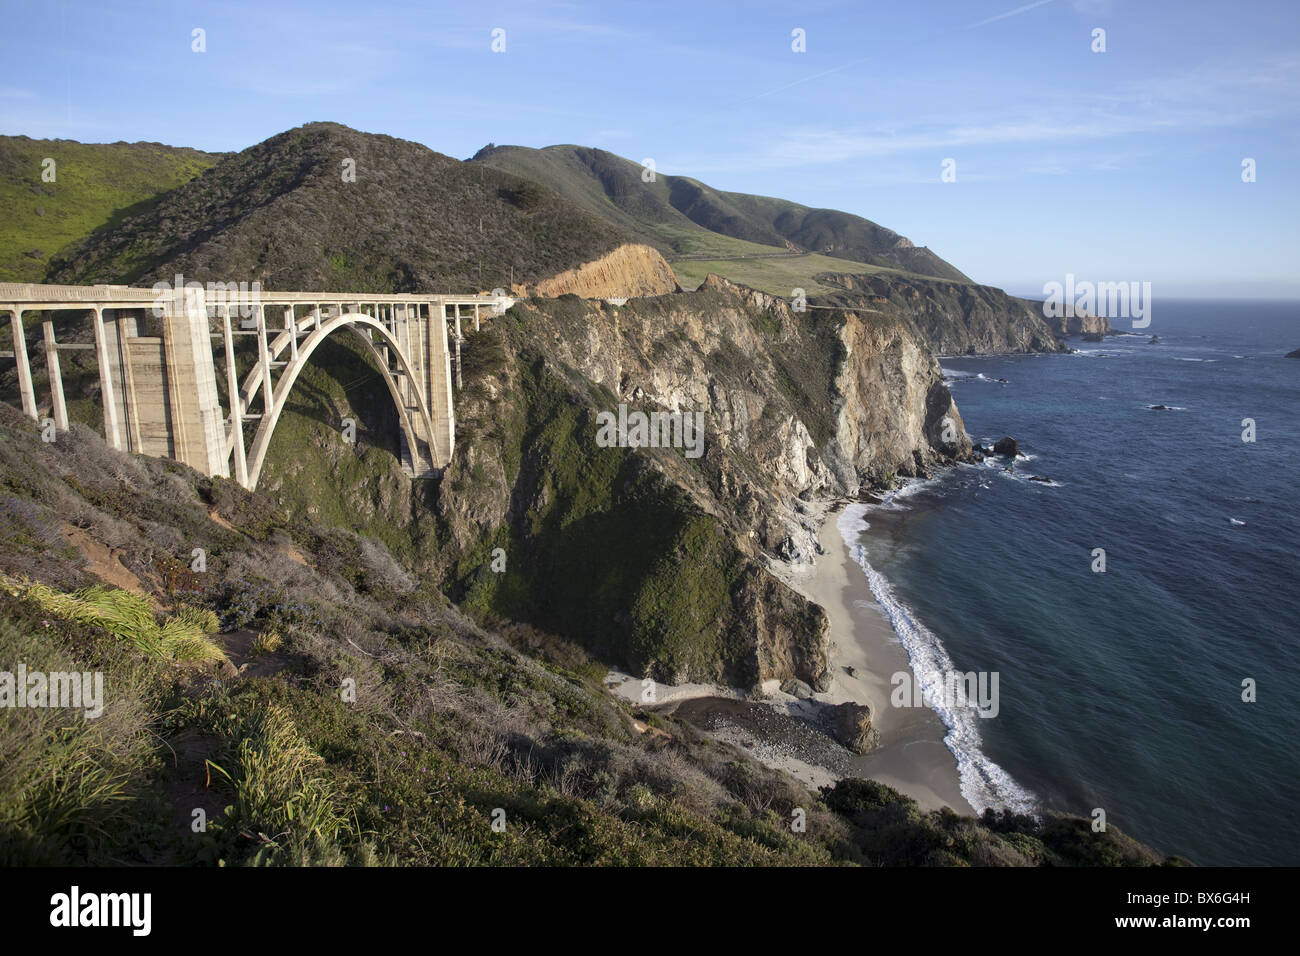 Bixby Bridge, along Highway 1 north of Big Sur, California, United States of America, North America - Stock Image